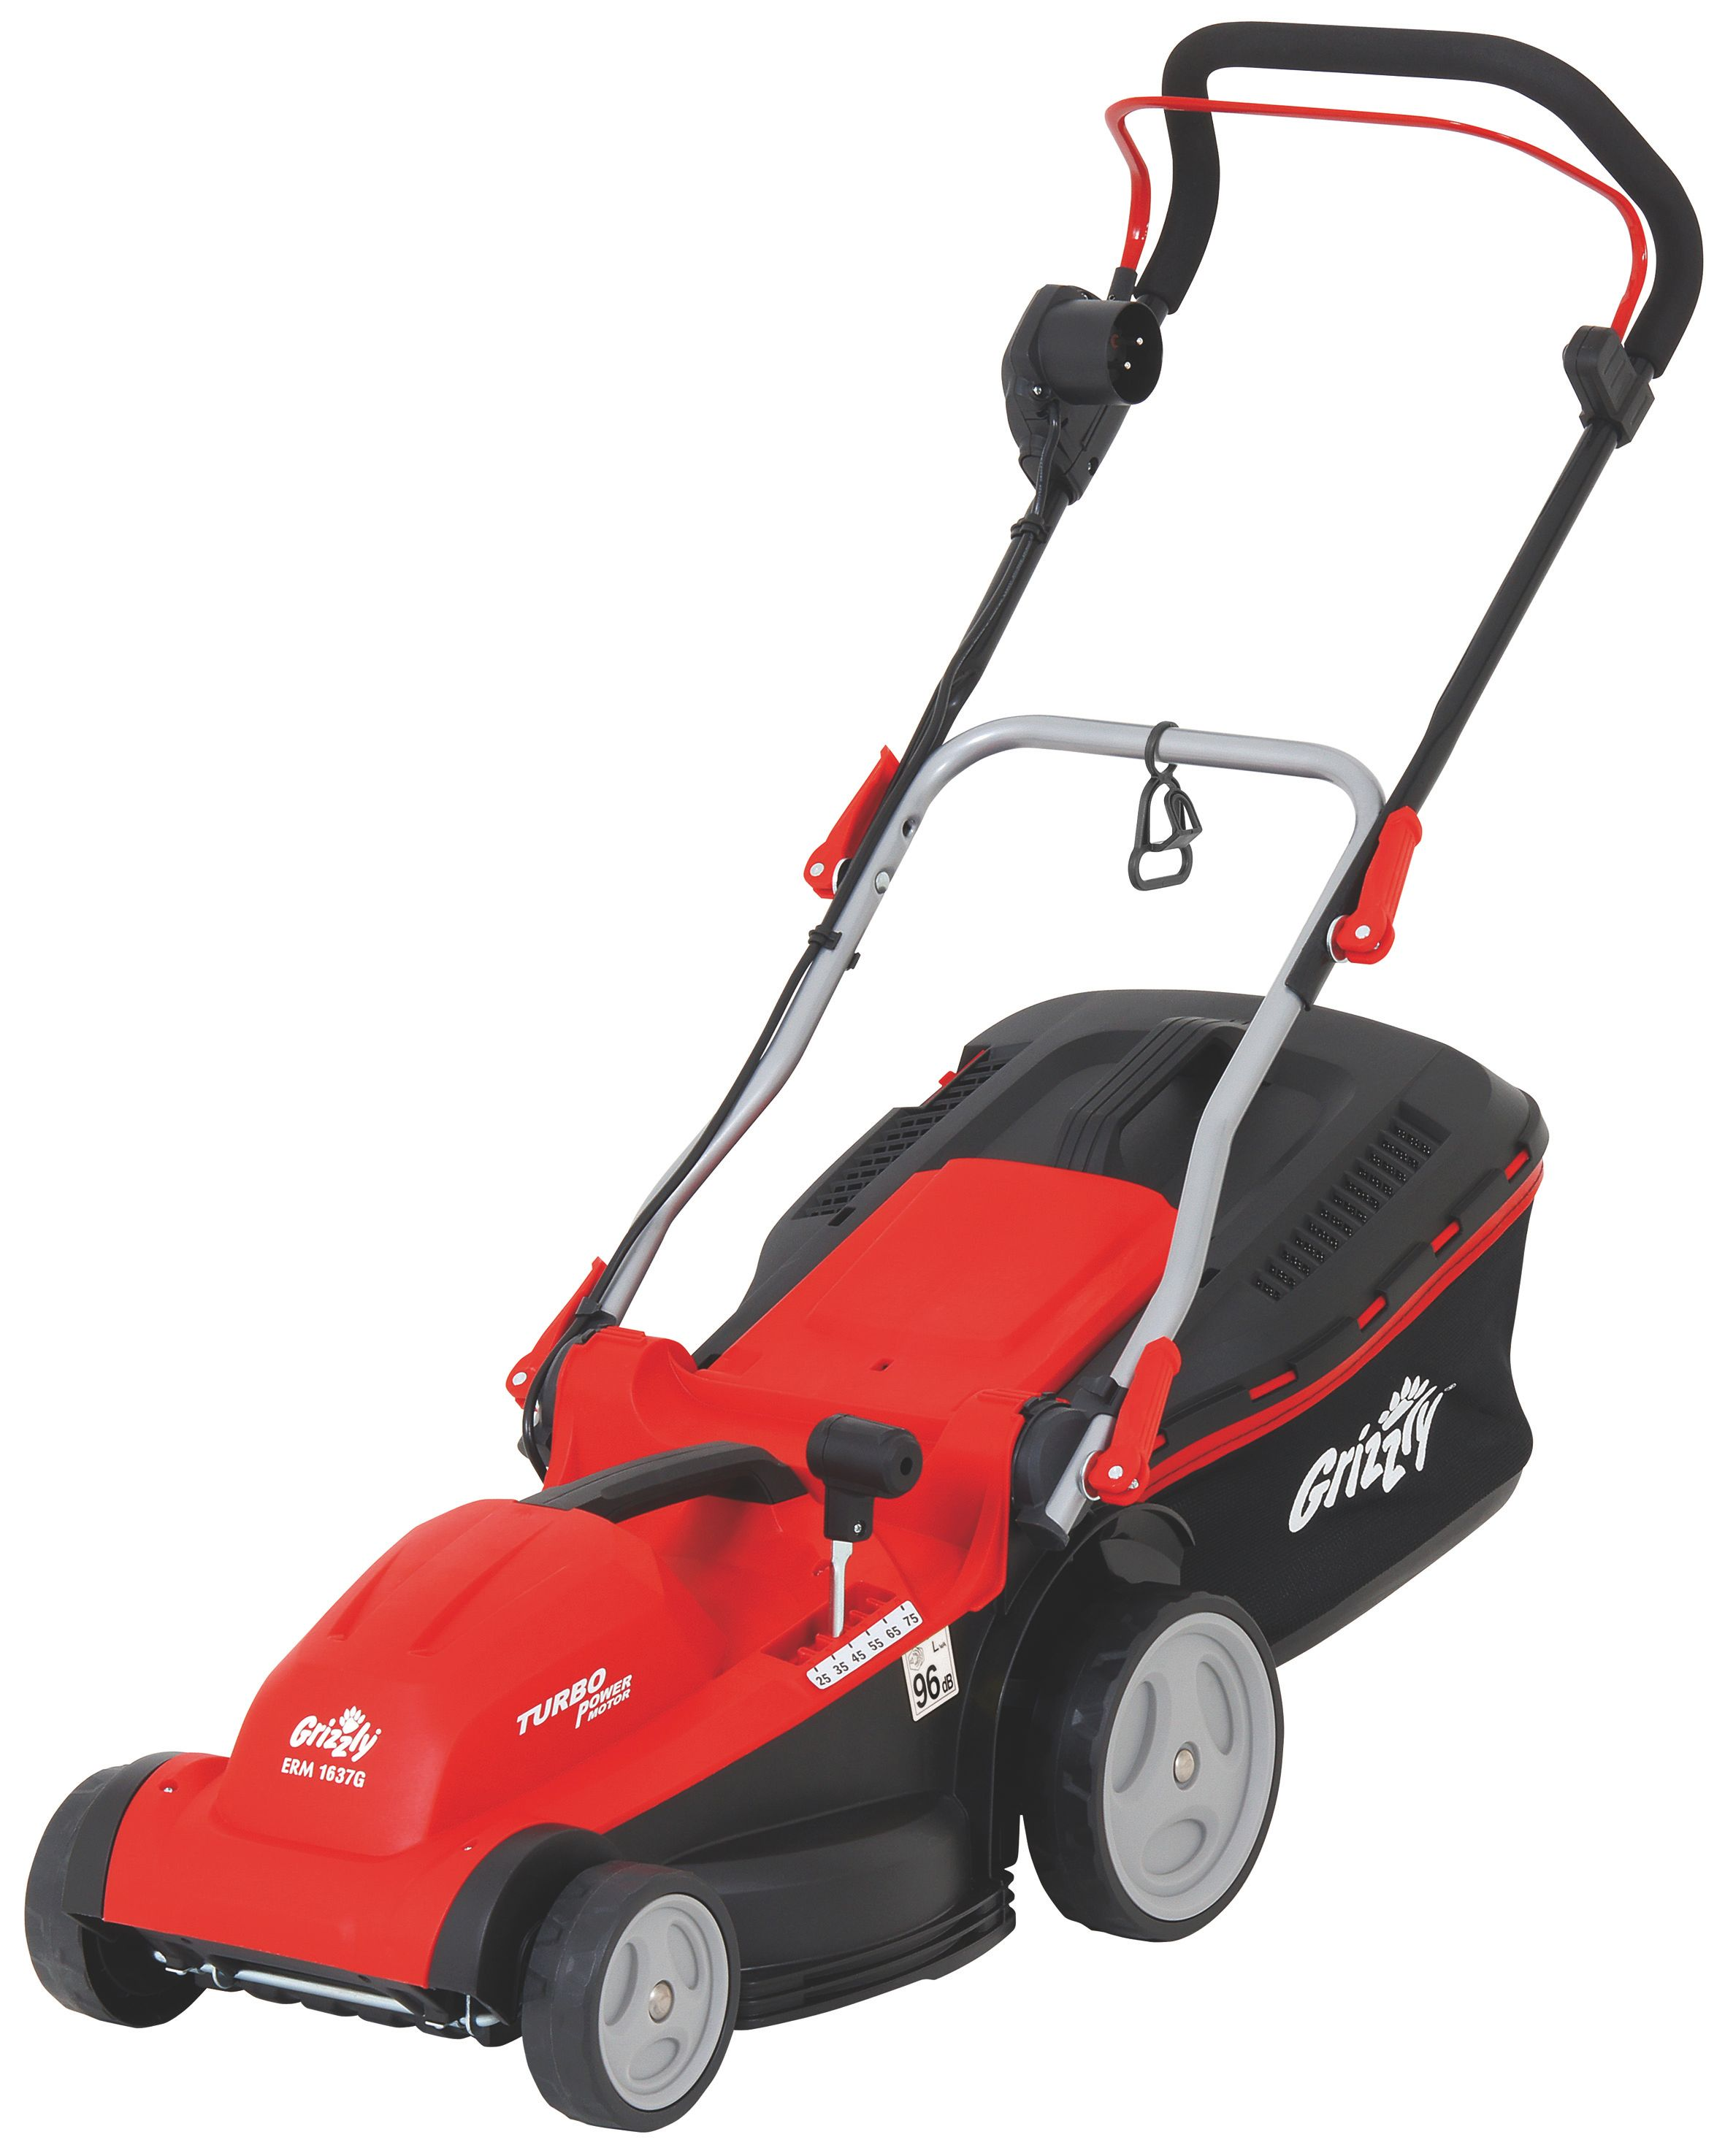 Image of Grizzly Grizzly 1600w electric mower 37cm cut